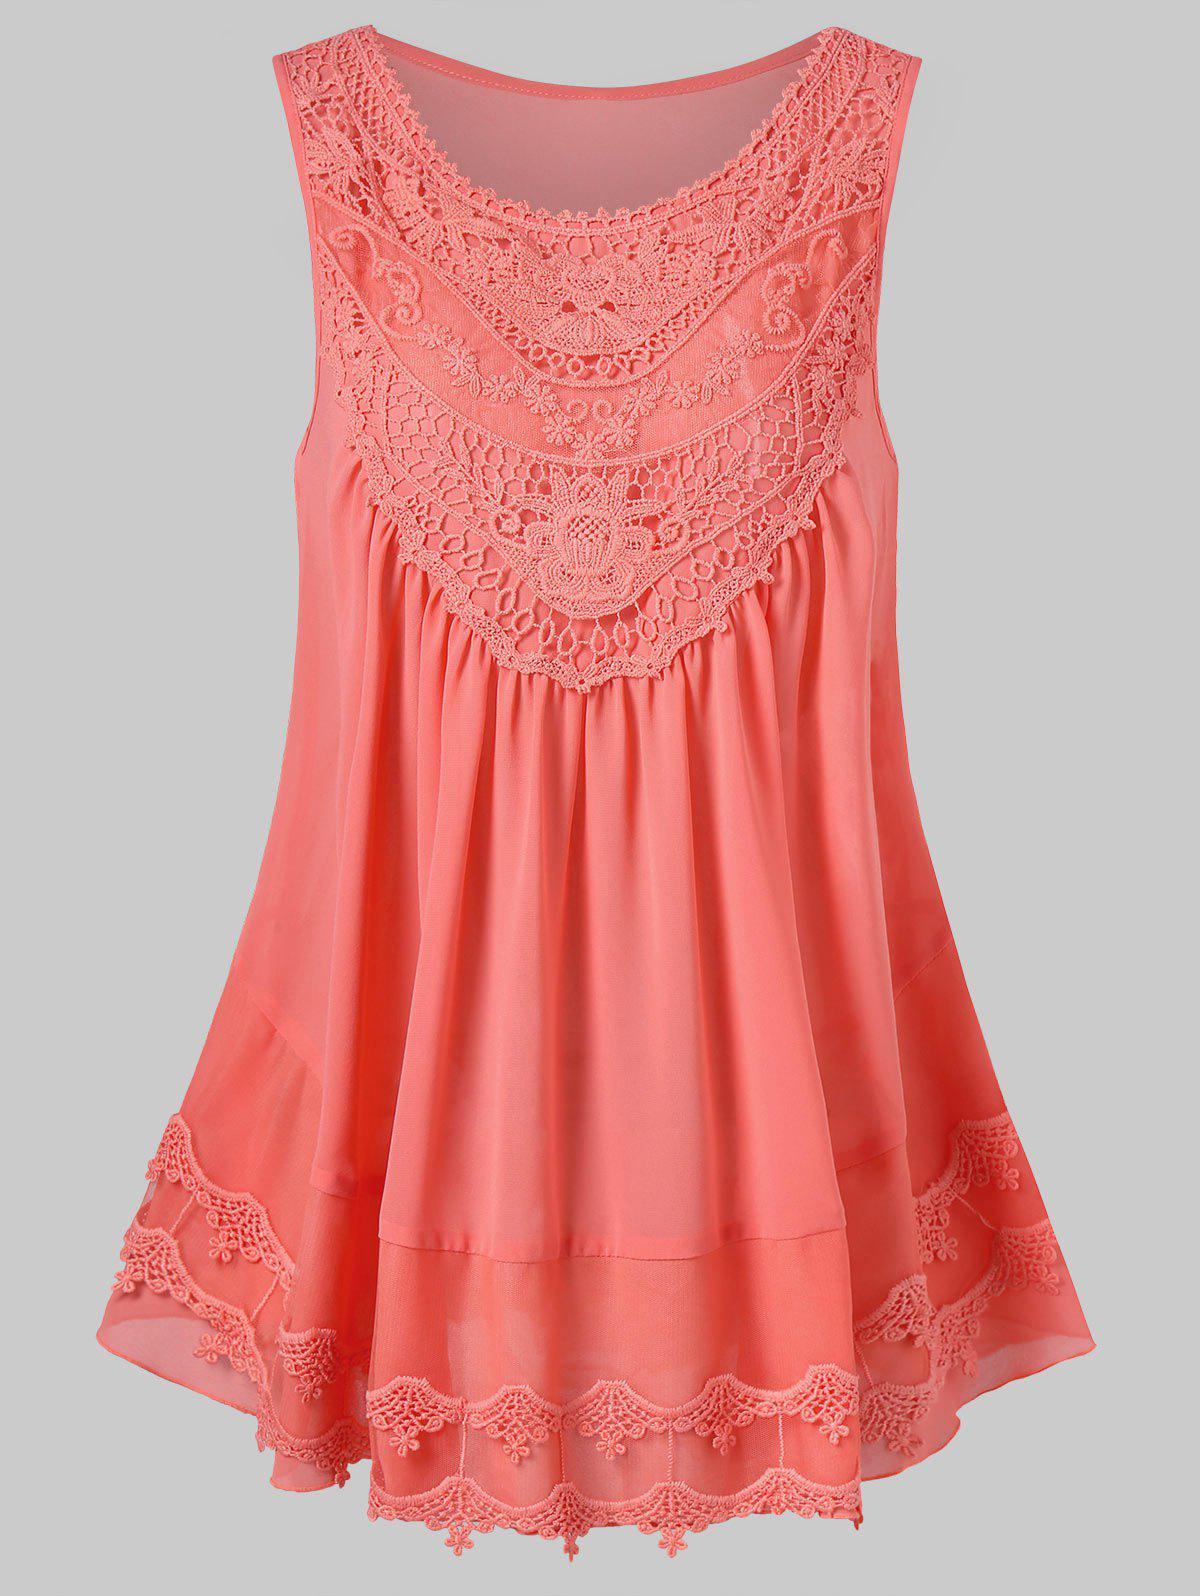 Lace Embroidered Mesh Insert Swing Tank Top - ORANGE PINK L